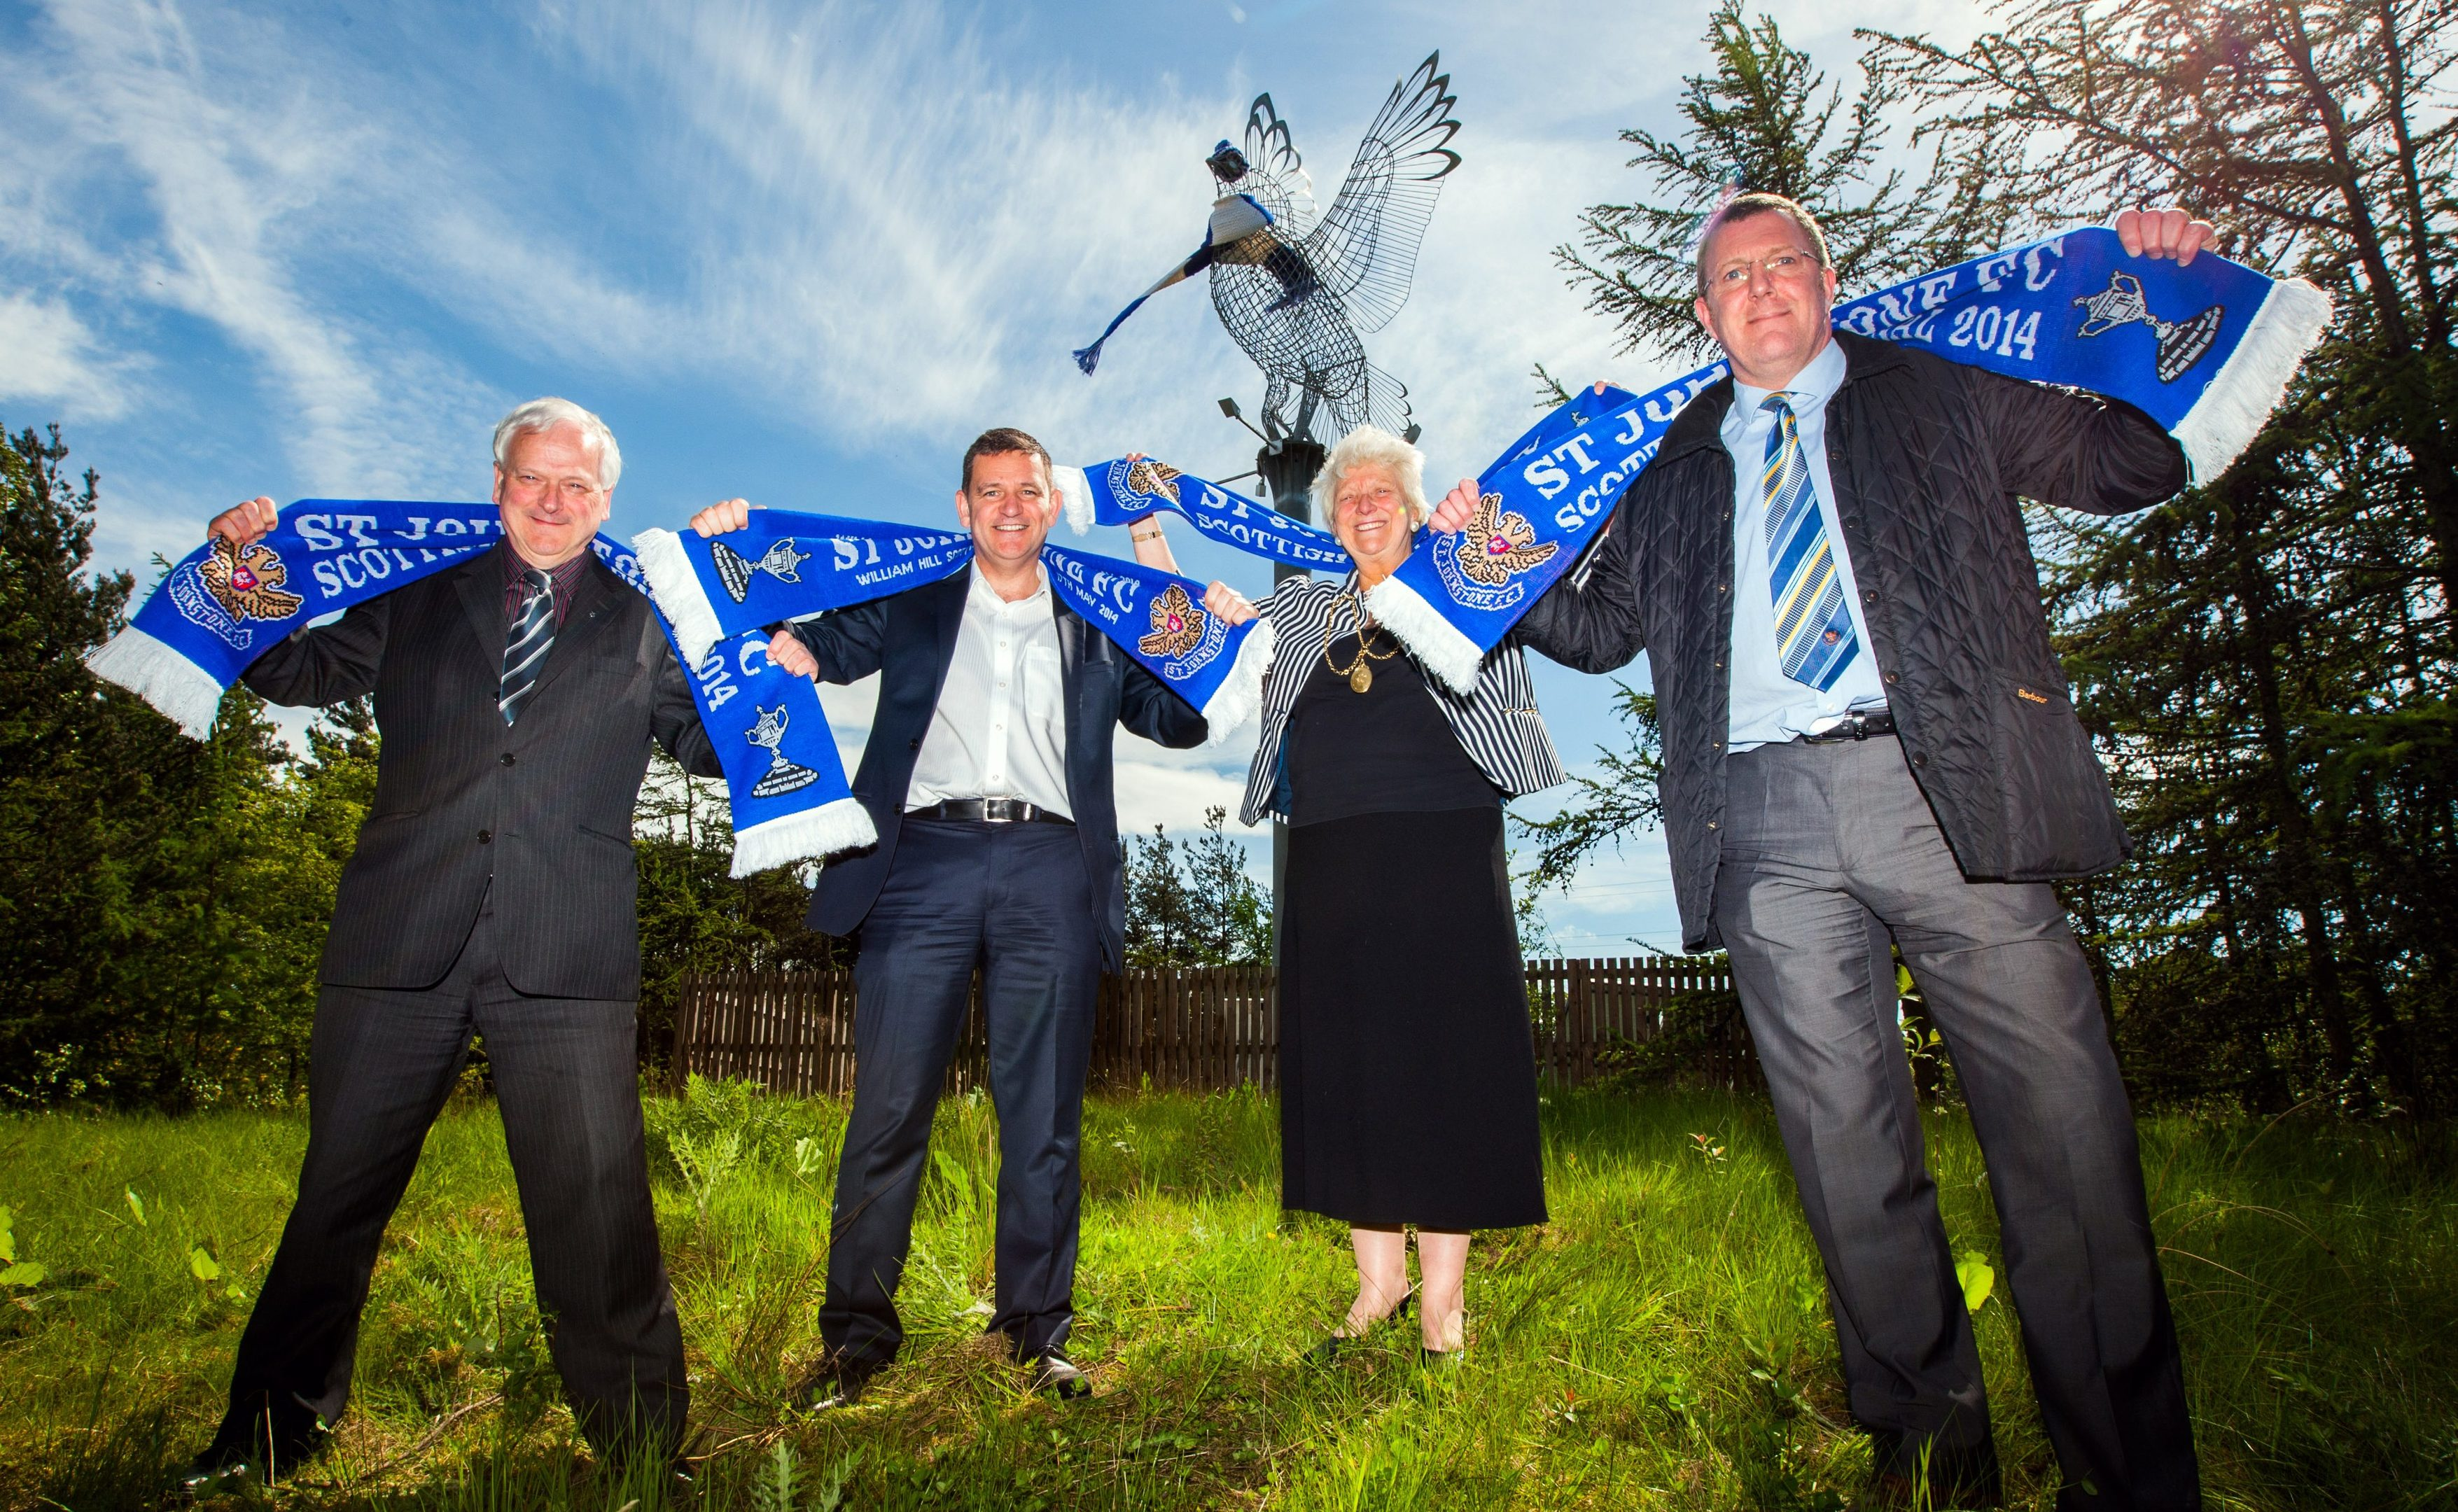 The council supported St Johnstone in their successful Scottish Cup campaign in 2014.